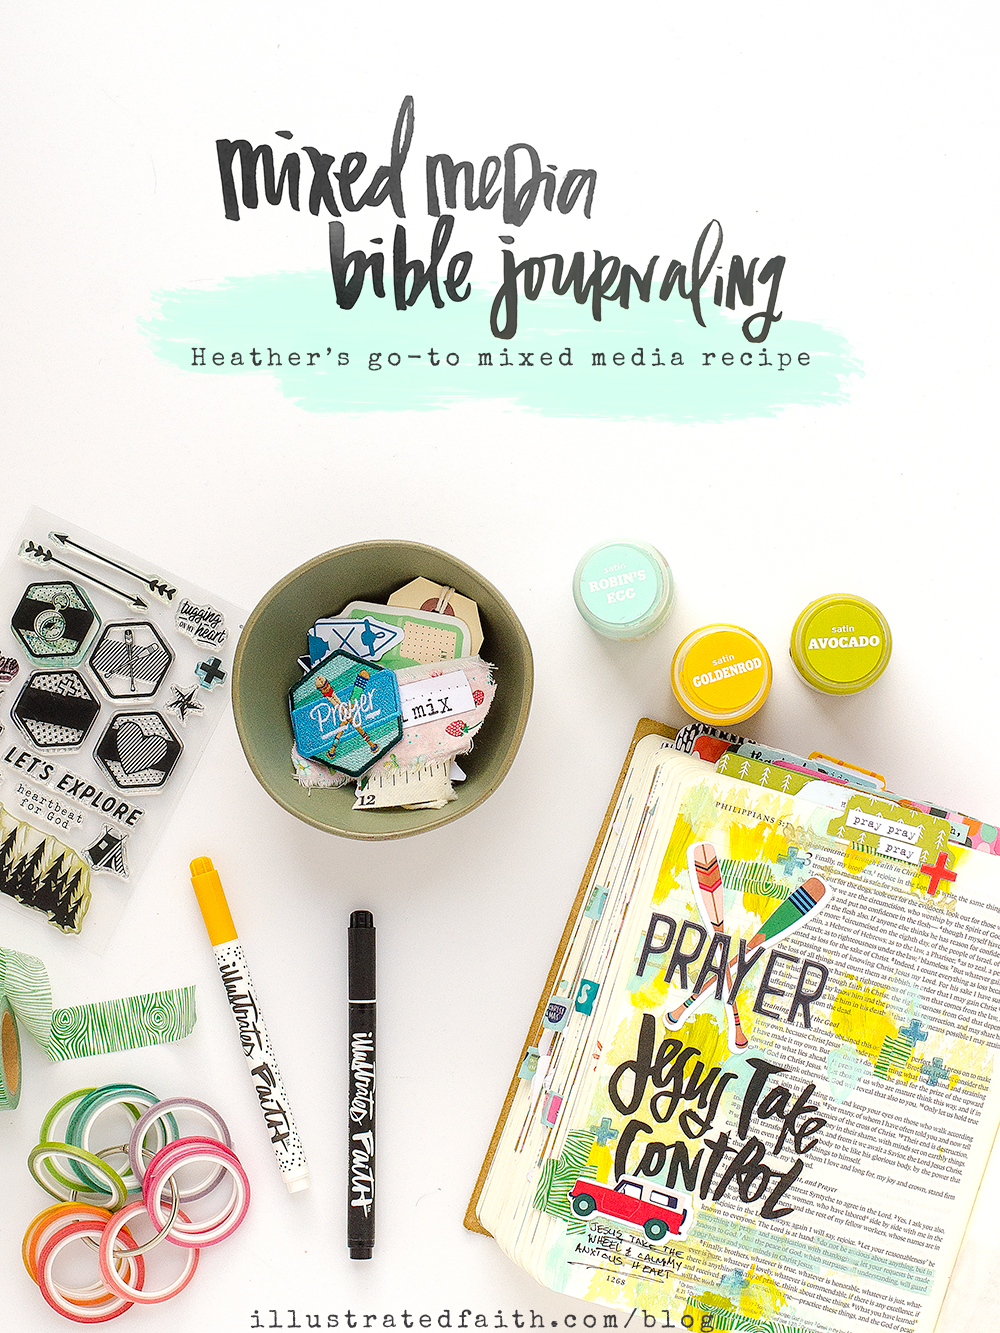 mixed media Bible journaling tutorial by Heather Greenwood | Heather's go-to recipe for Bible journaling | Revival Camp 2018 - Prayer | Philippians 4:6-7